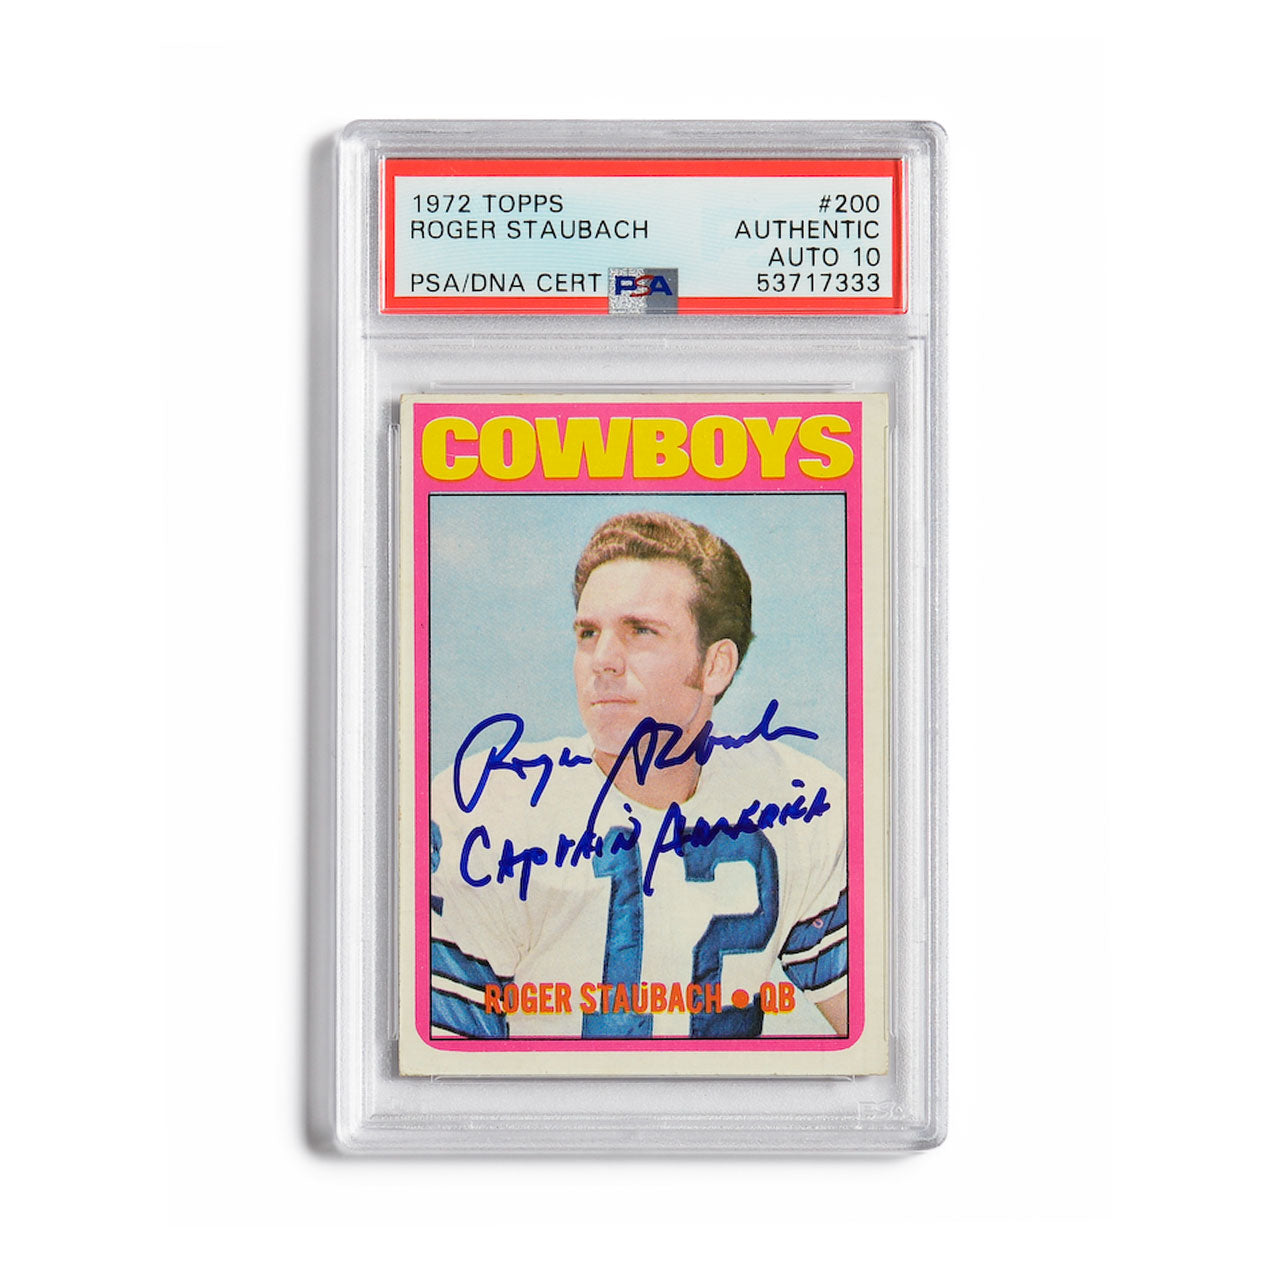 1972 Topps Roger Staubach Autographed Rookie Card